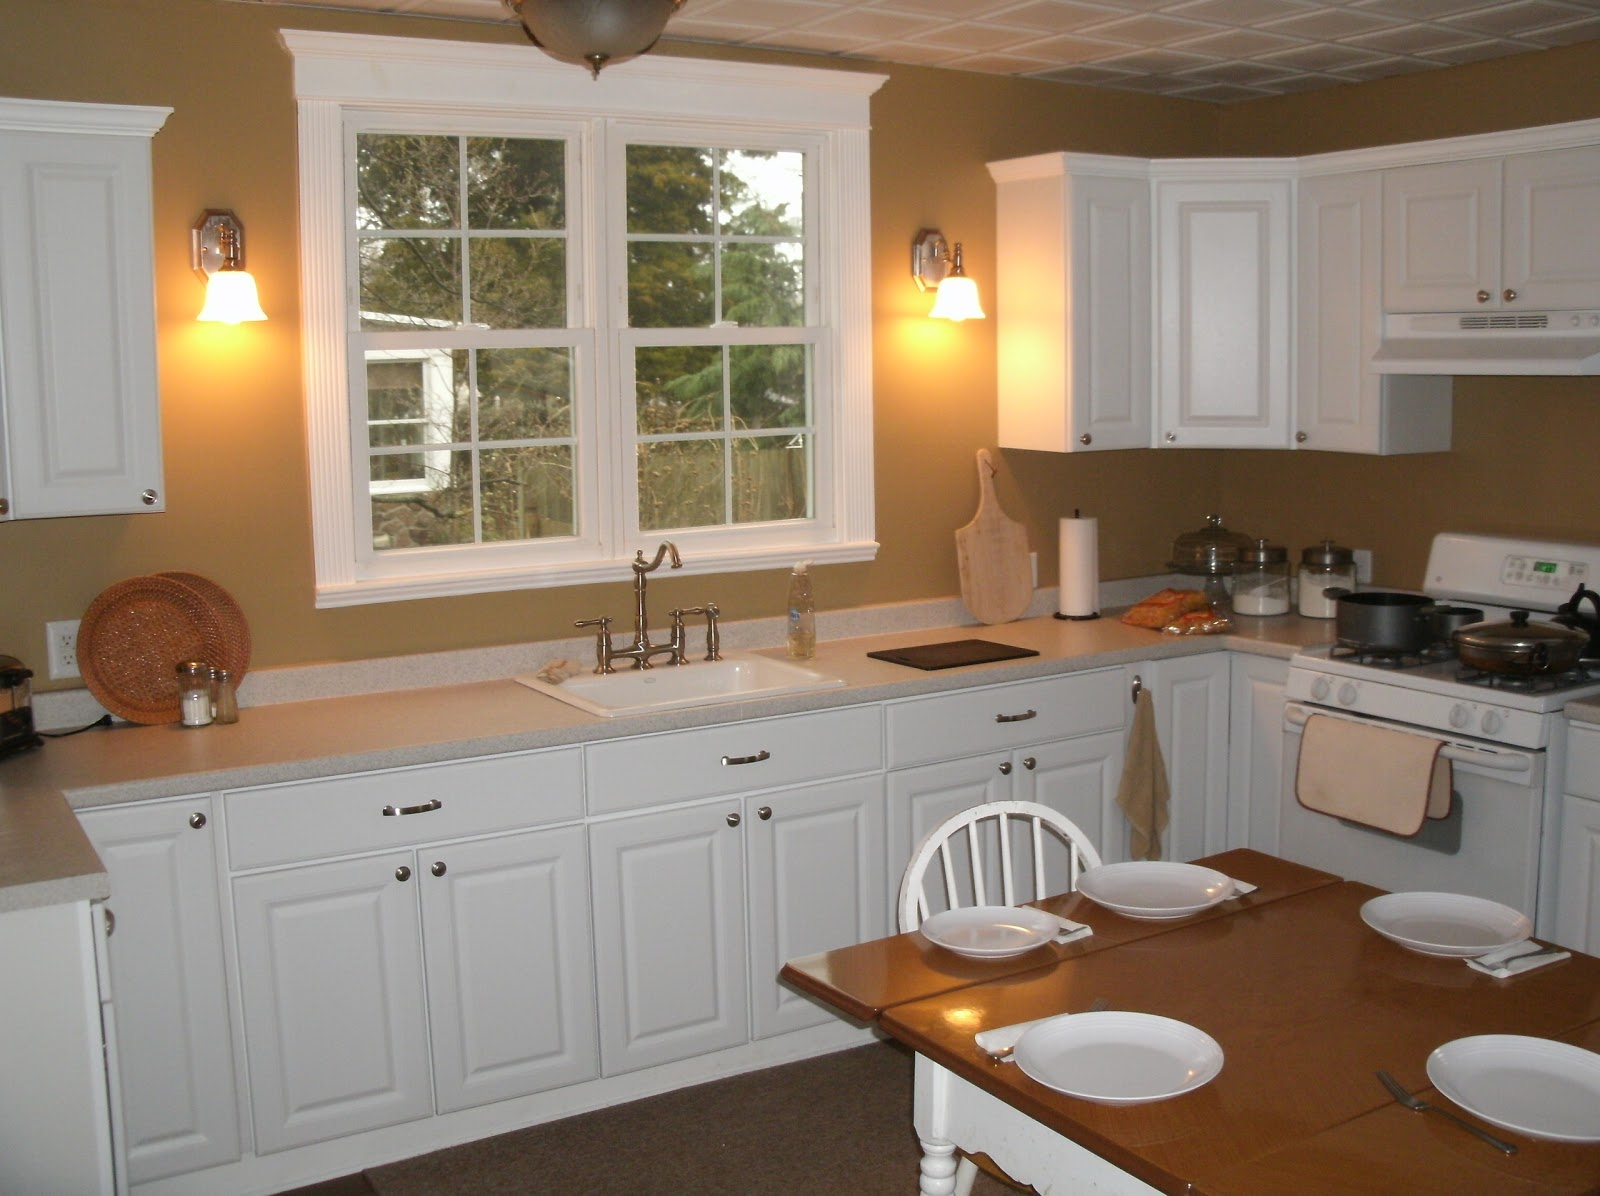 Small Kitchen Remodel Designs Of Home Remodeling And Improvements Tips And How To 39 S